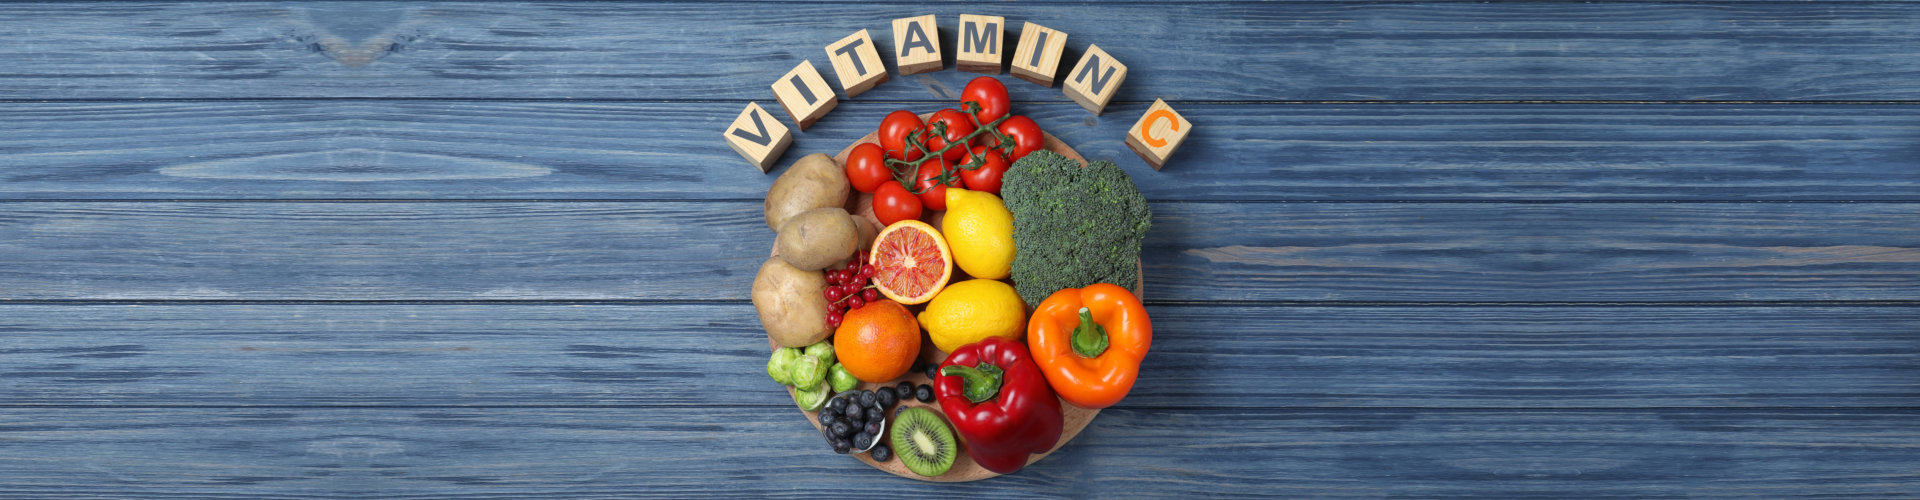 cubes with phrase vitamin c and fresh products on blue wooden table